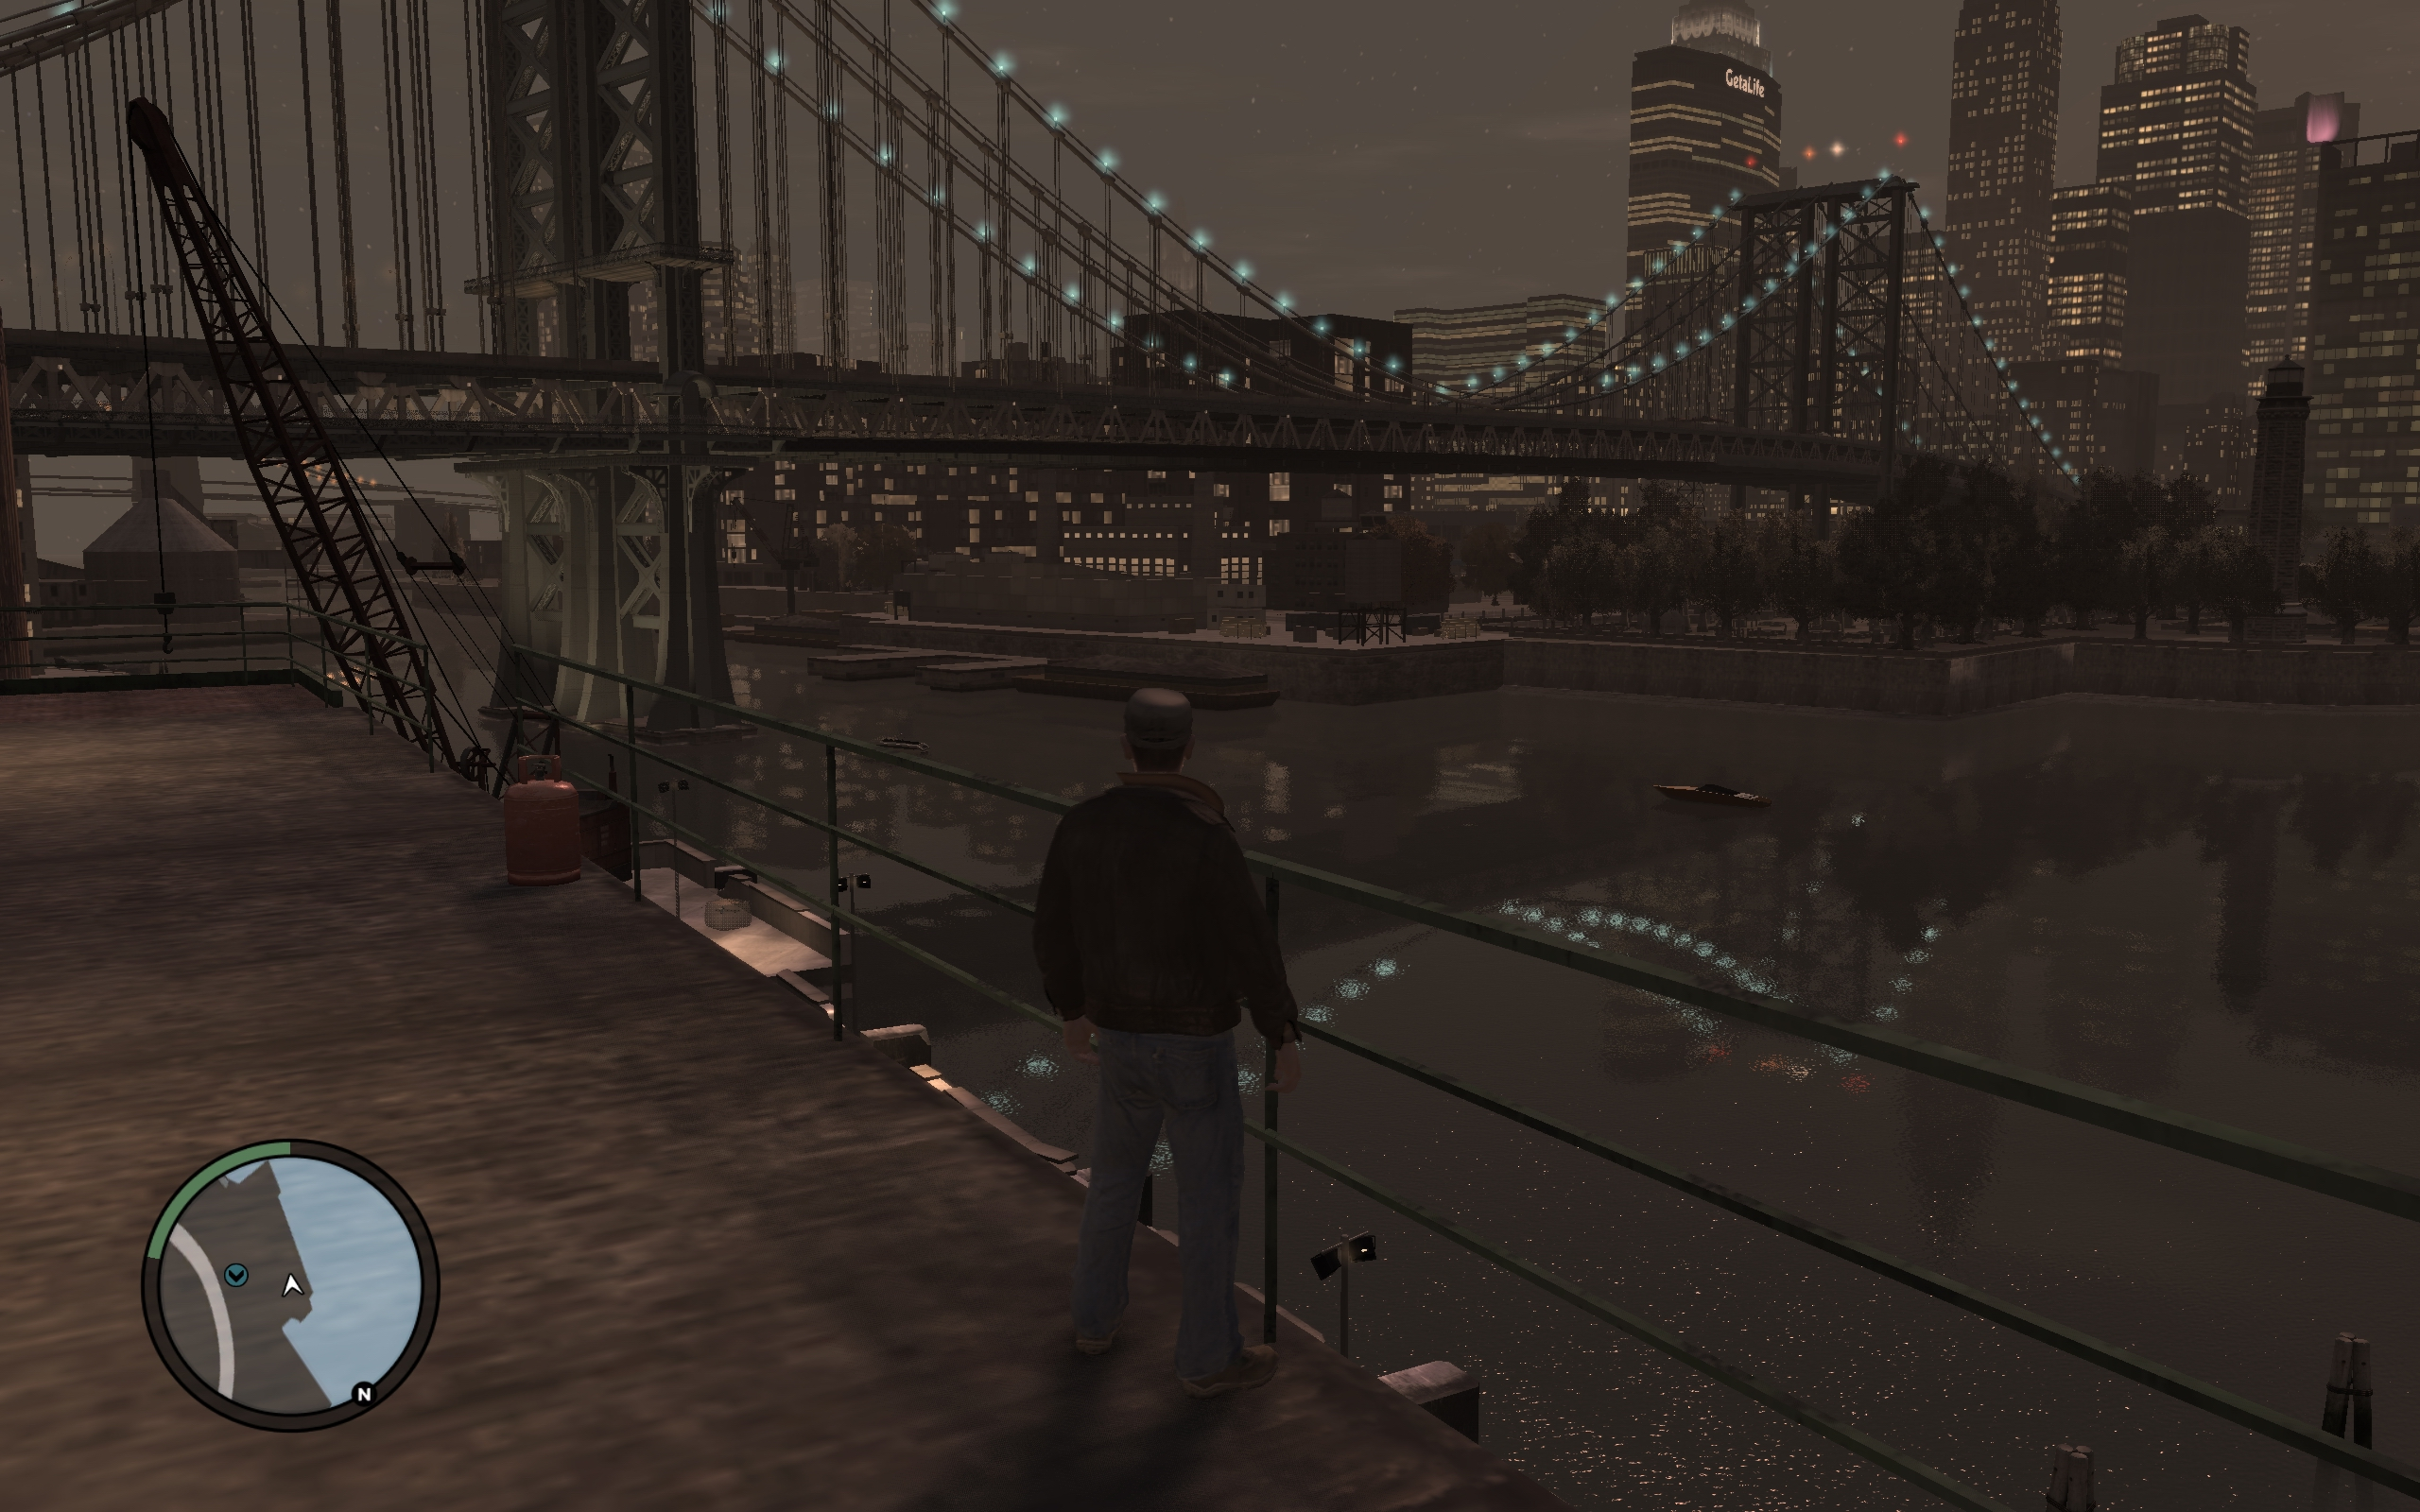 gta-iv-pc-screenshot_047.jpg